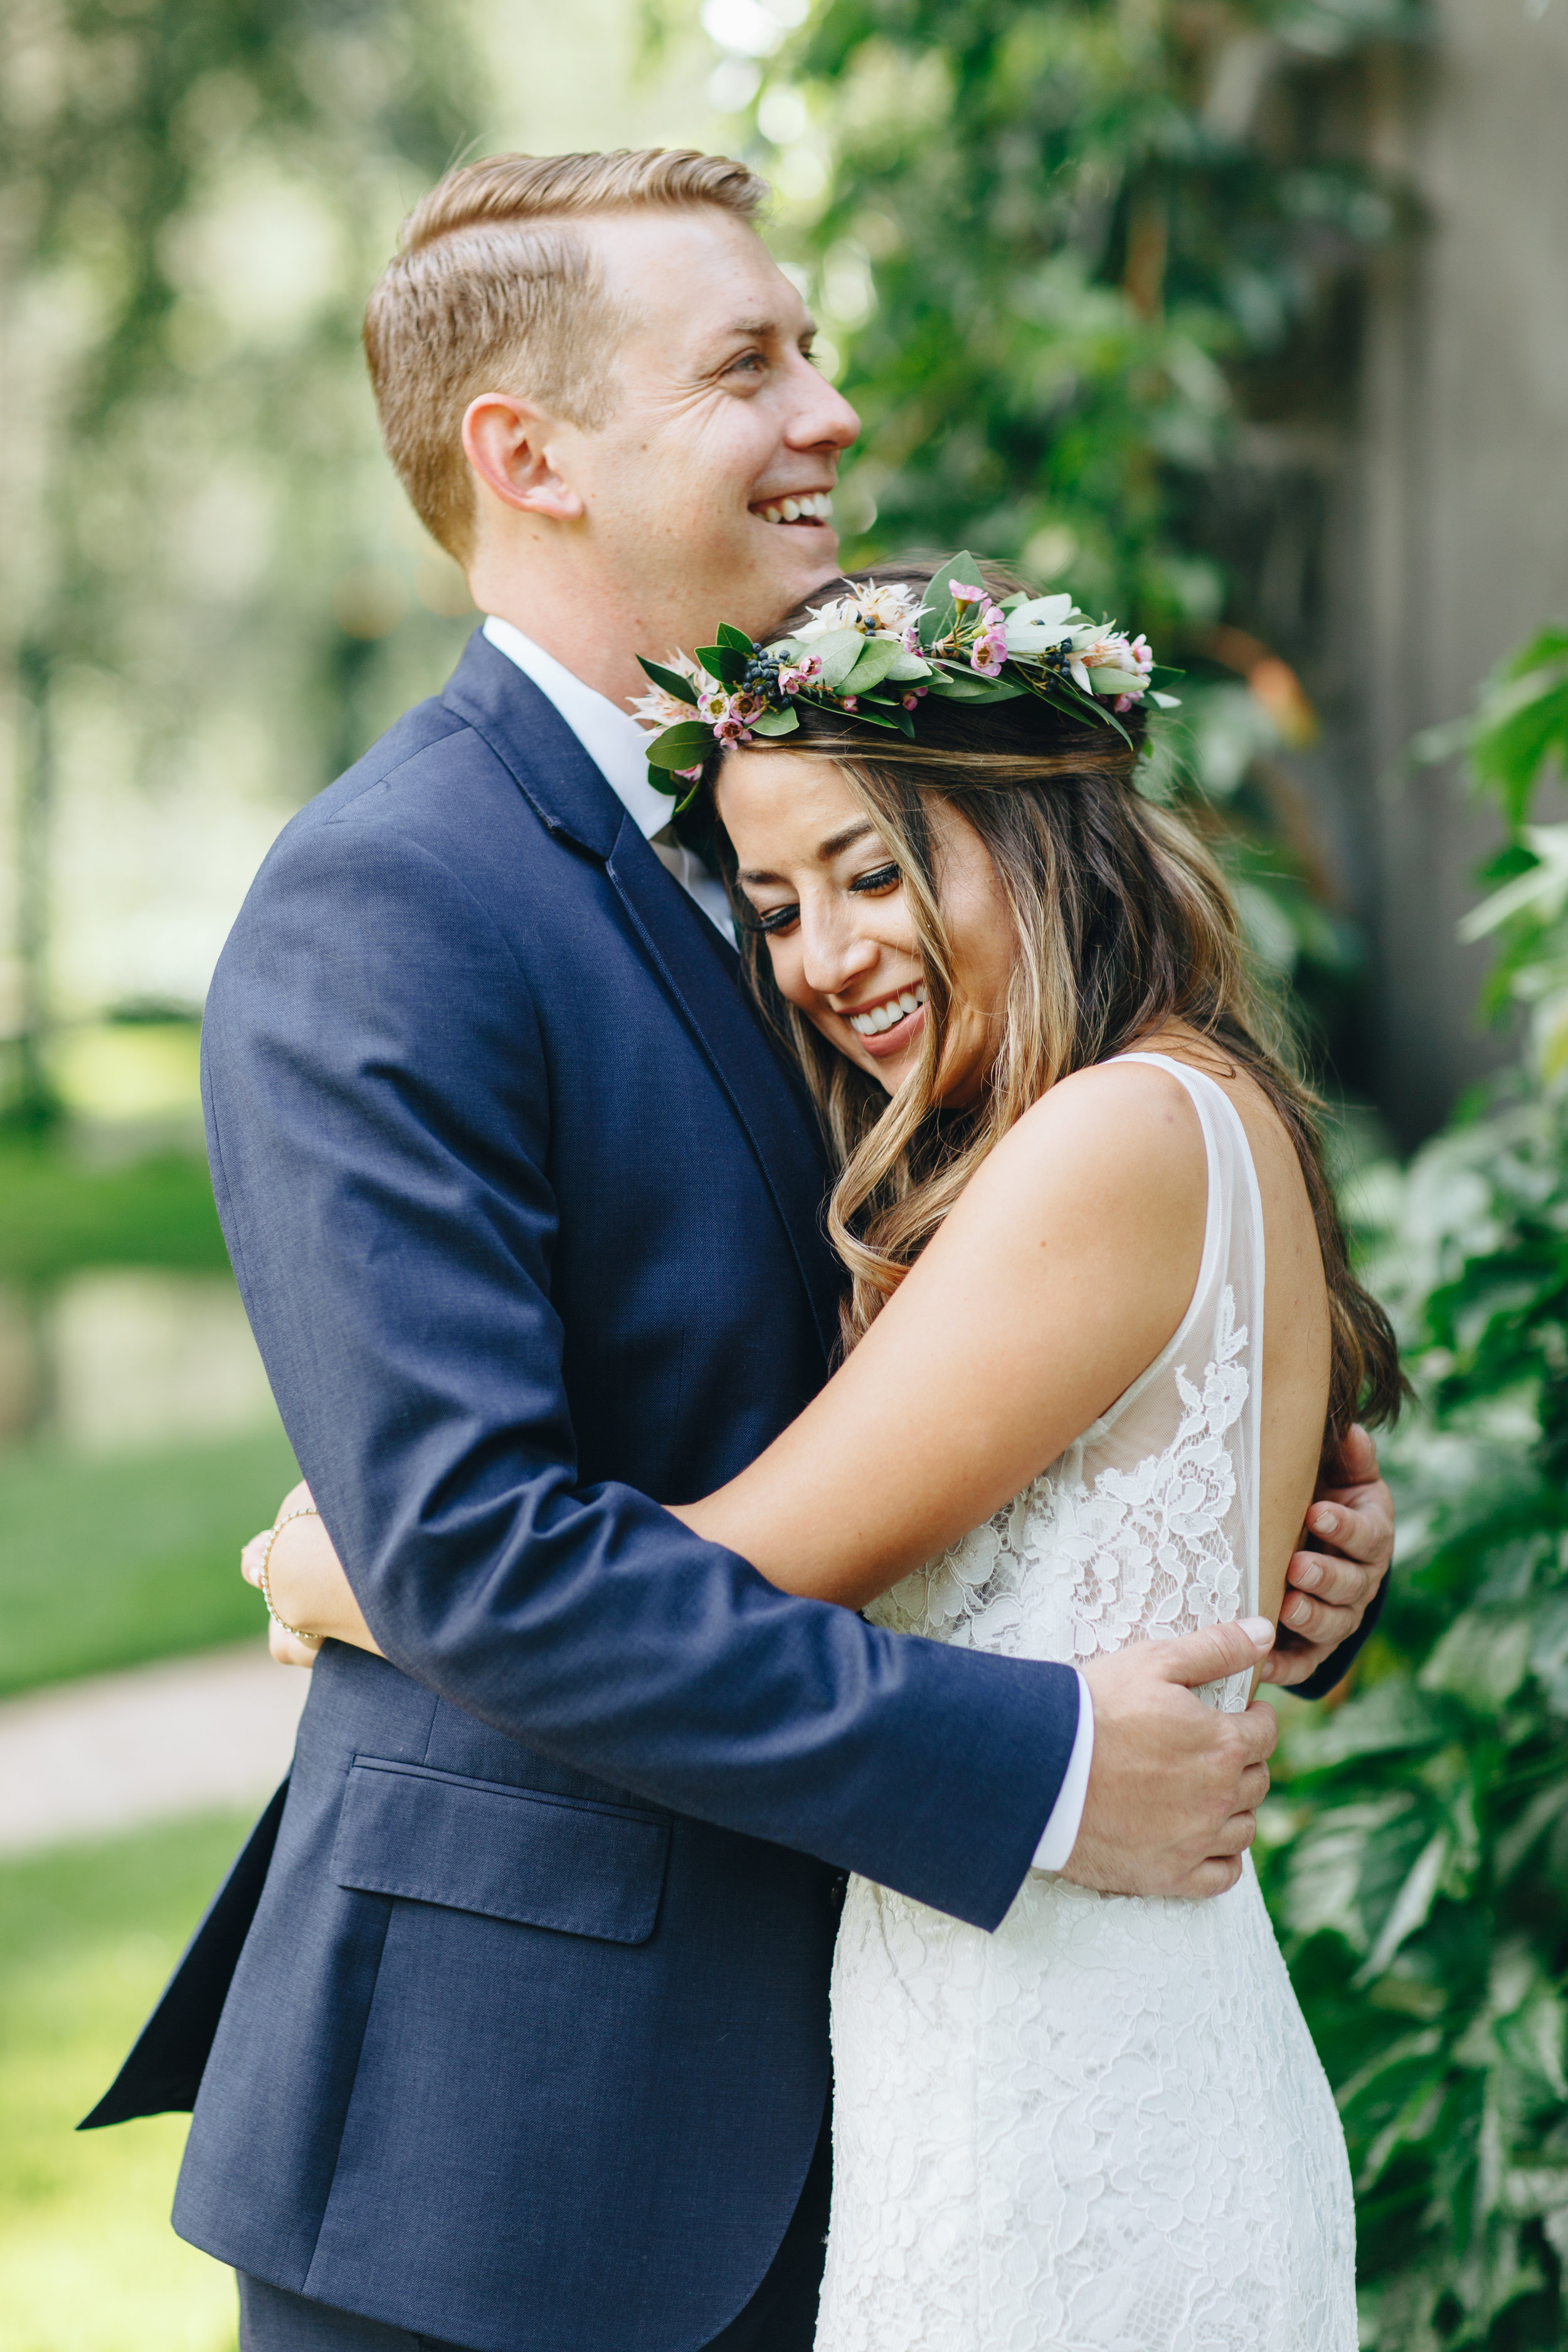 Flowers by Lace and lilies, jewel tones, colorful, bridal bouquet, hair crown, plants and flowers, colorful arch, castle wedding, colorado wedding, dunafon castle wedding jewel toned wedding, berry toned wedding,